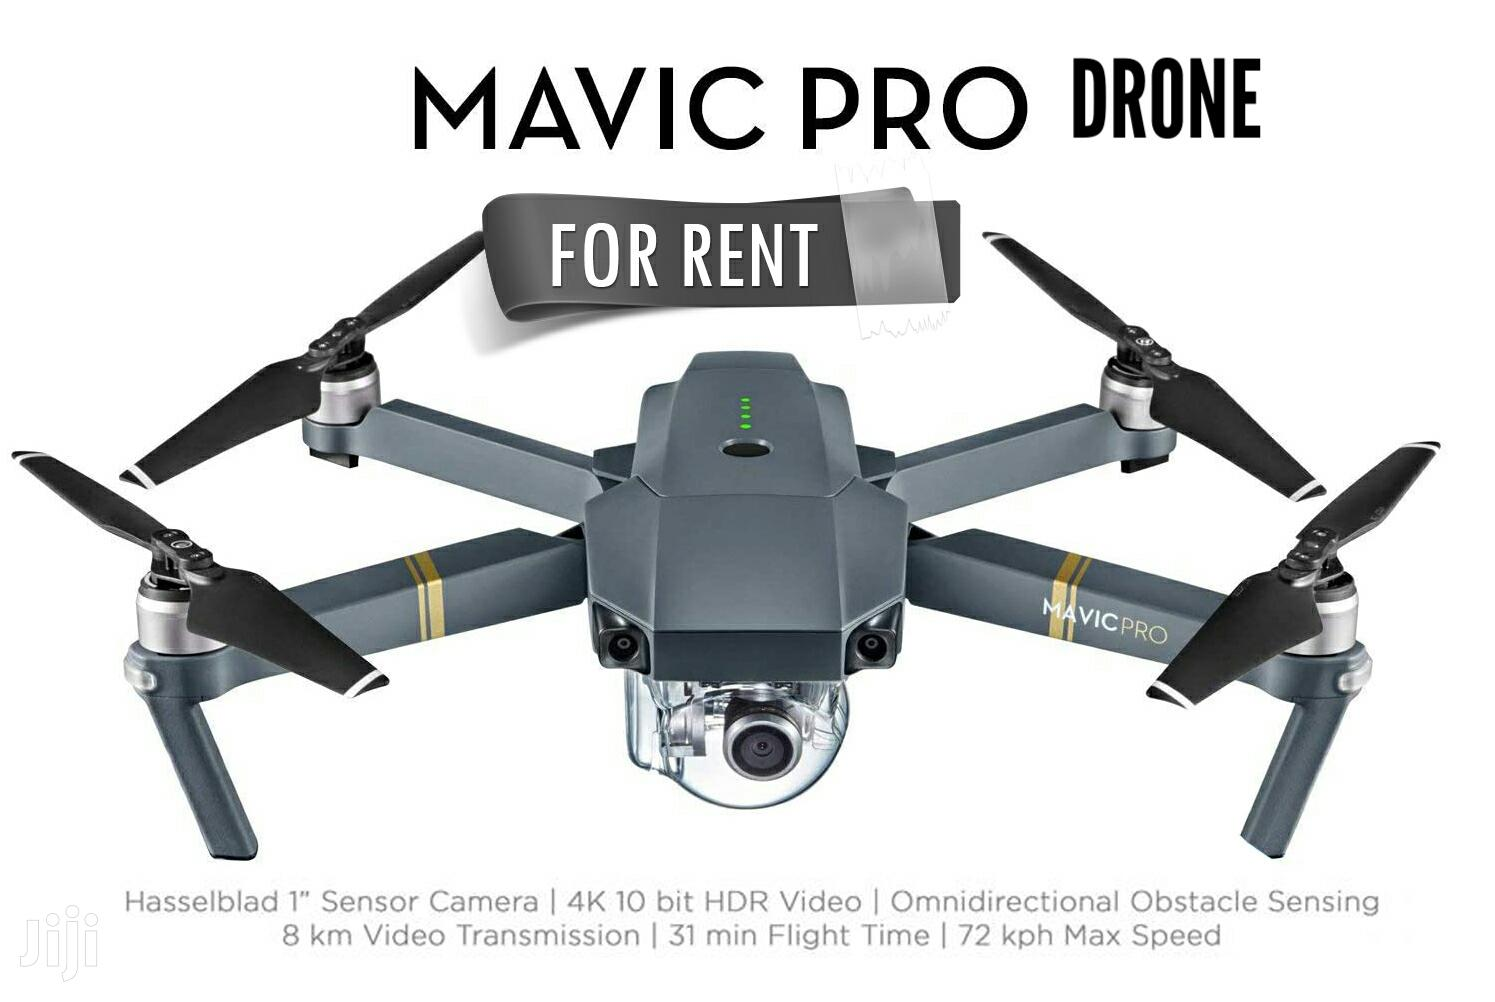 Drone for Rent/Sales/Training on How to Fly/Repairs